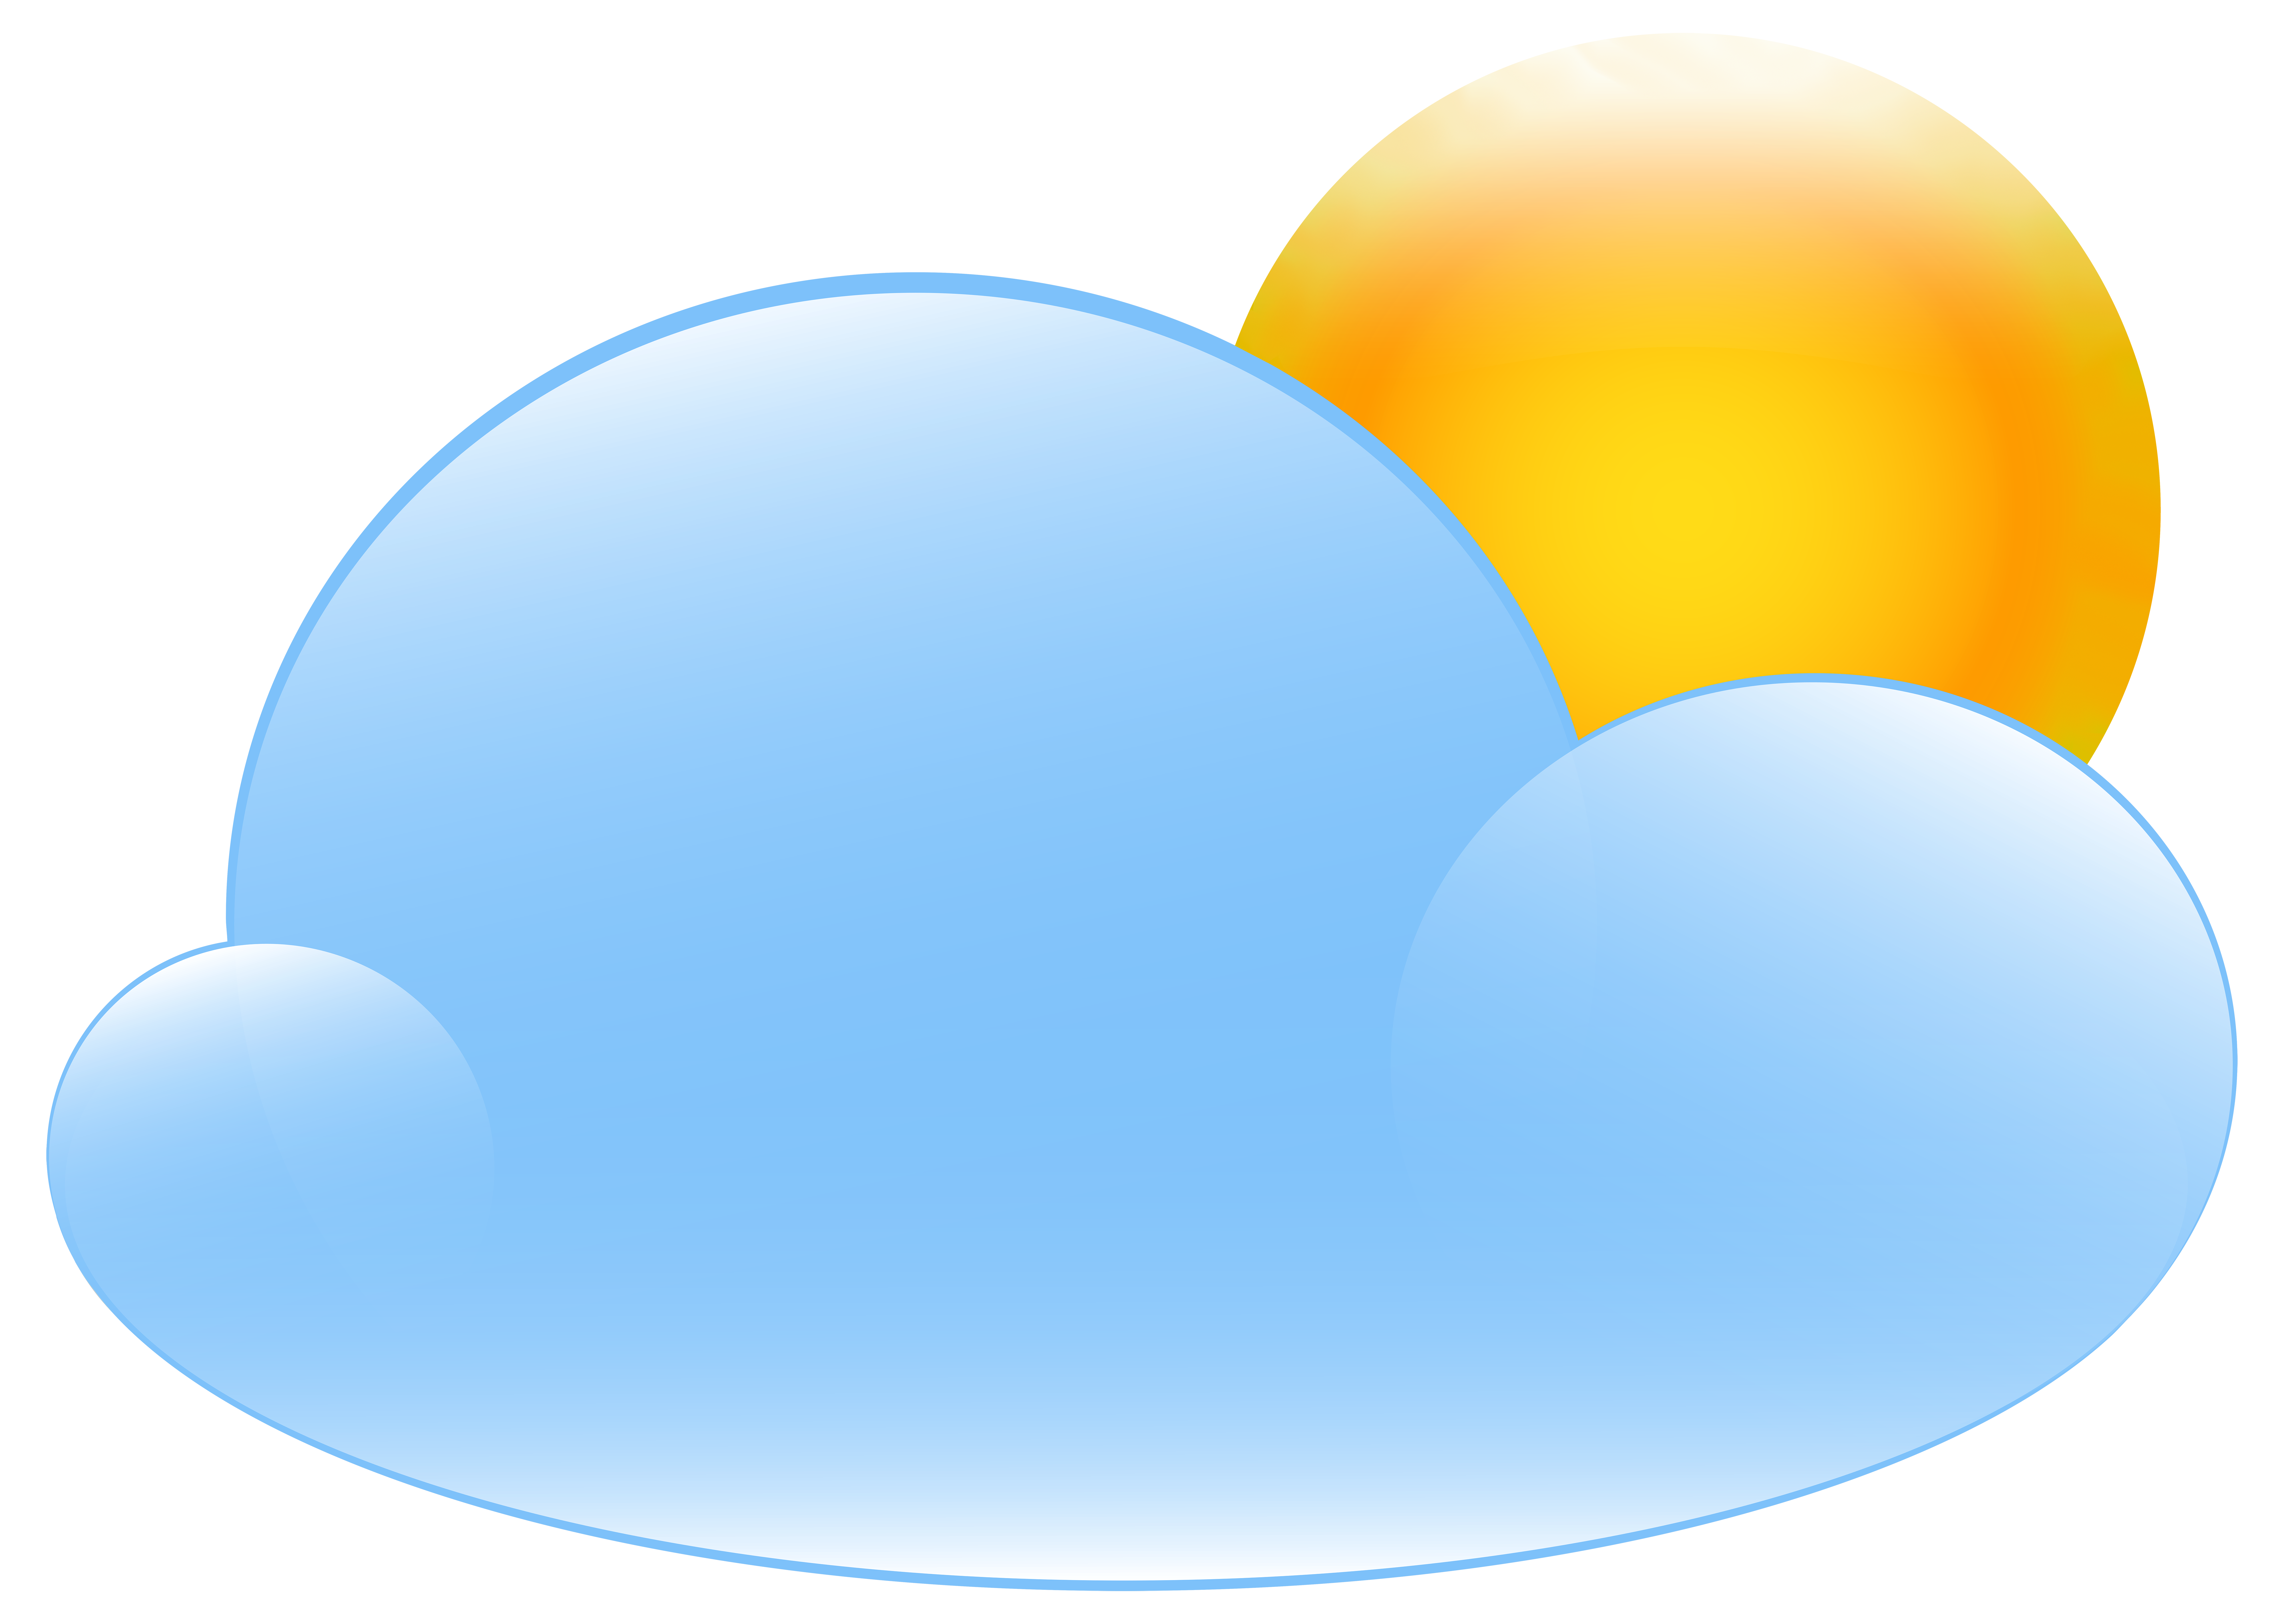 With sun weather icon. Cloudy clipart partly cloudy